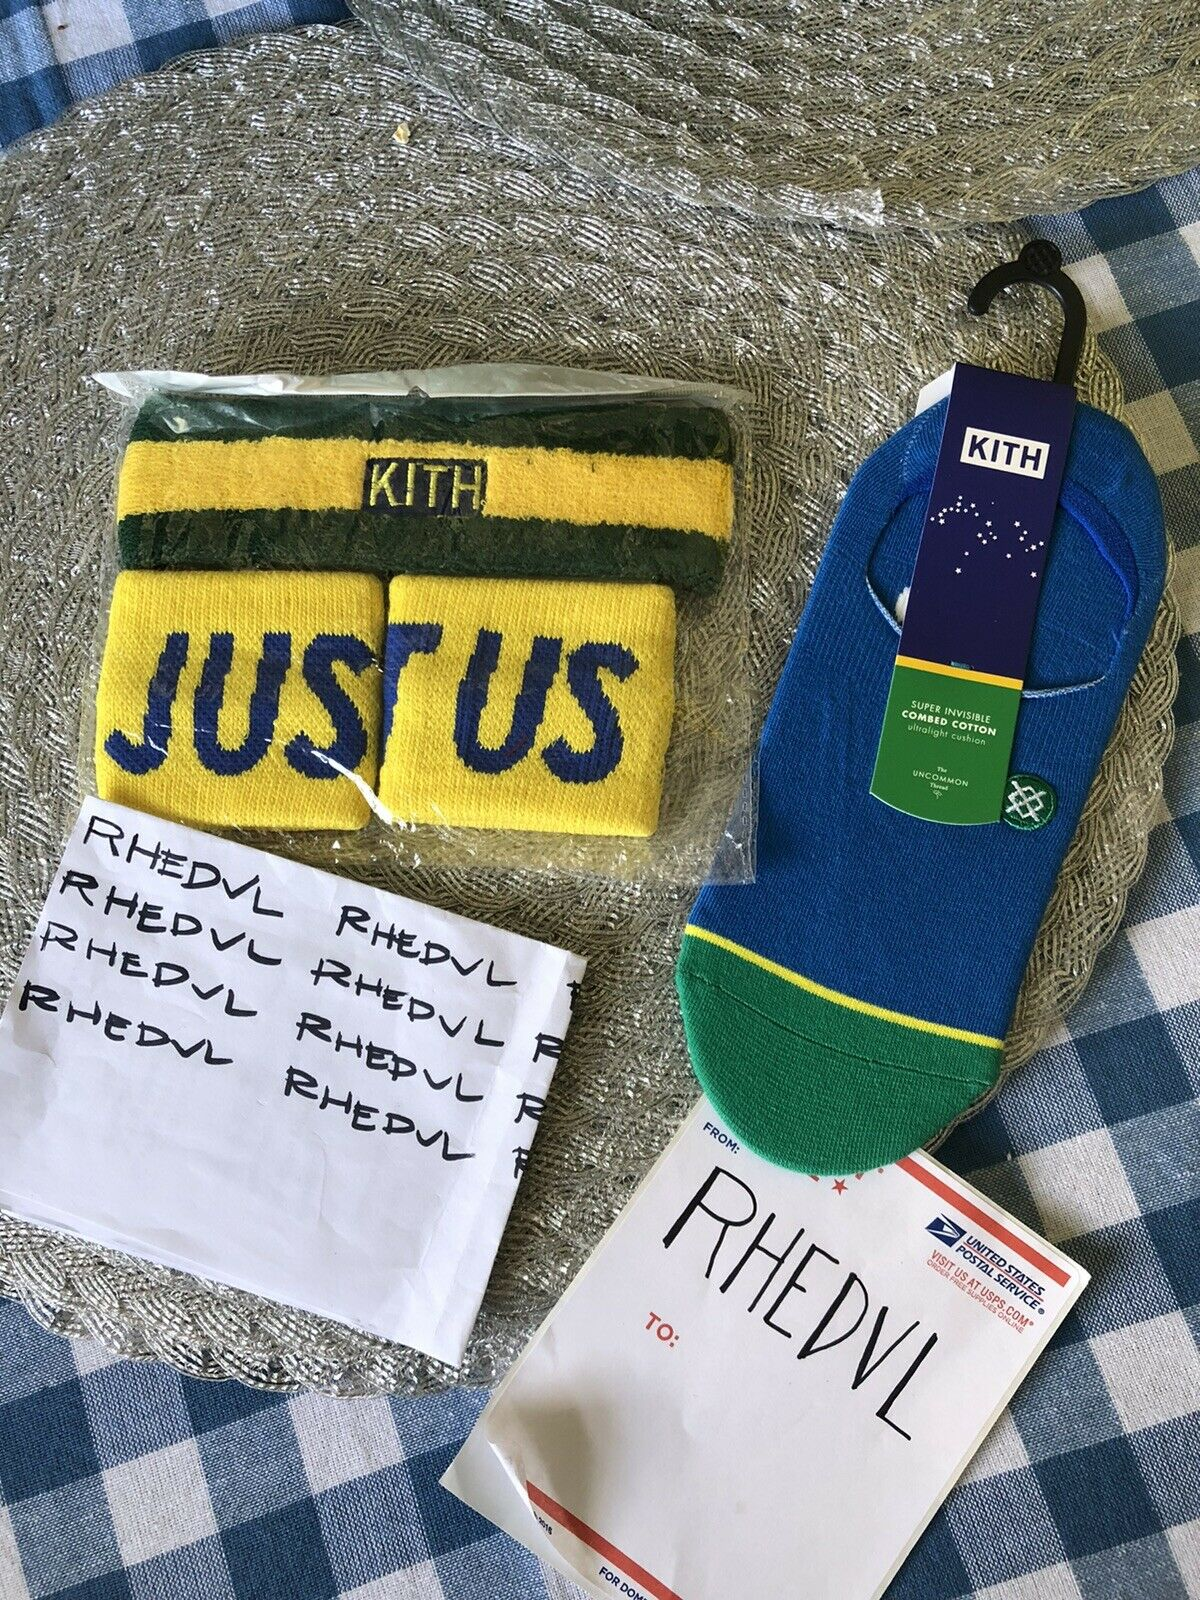 Kith x Stance Brazil GT-2 Super Invisible and KithStrike Headband and Wristbands